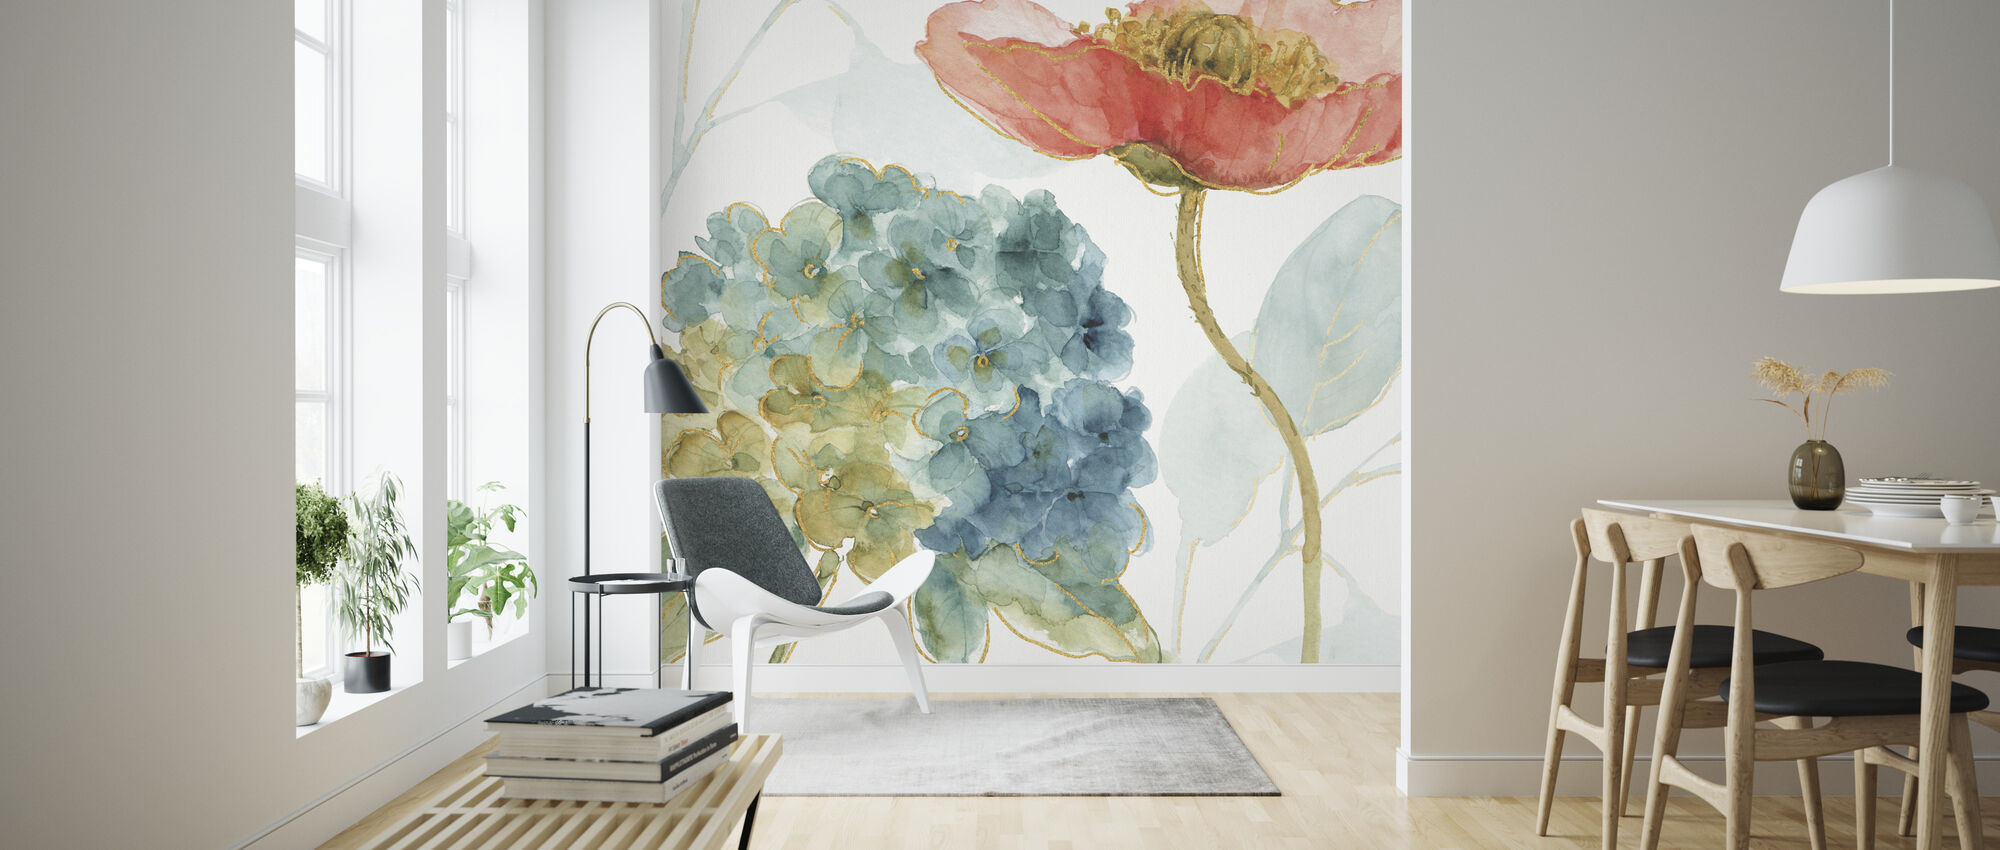 Rainbow Seeds Flowers 4 - Wallpaper - Living Room